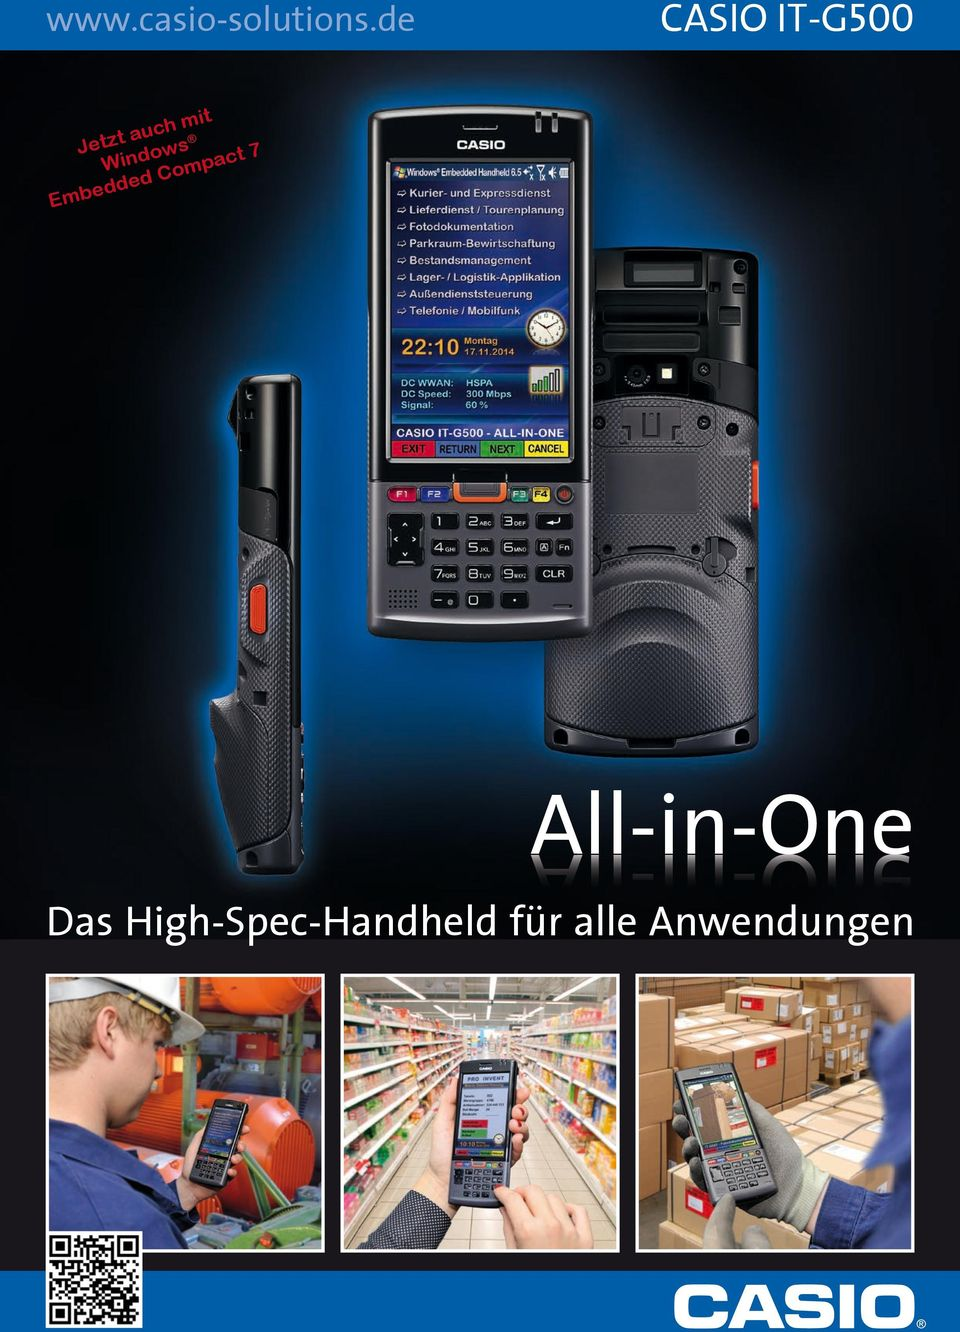 All-in-One Das